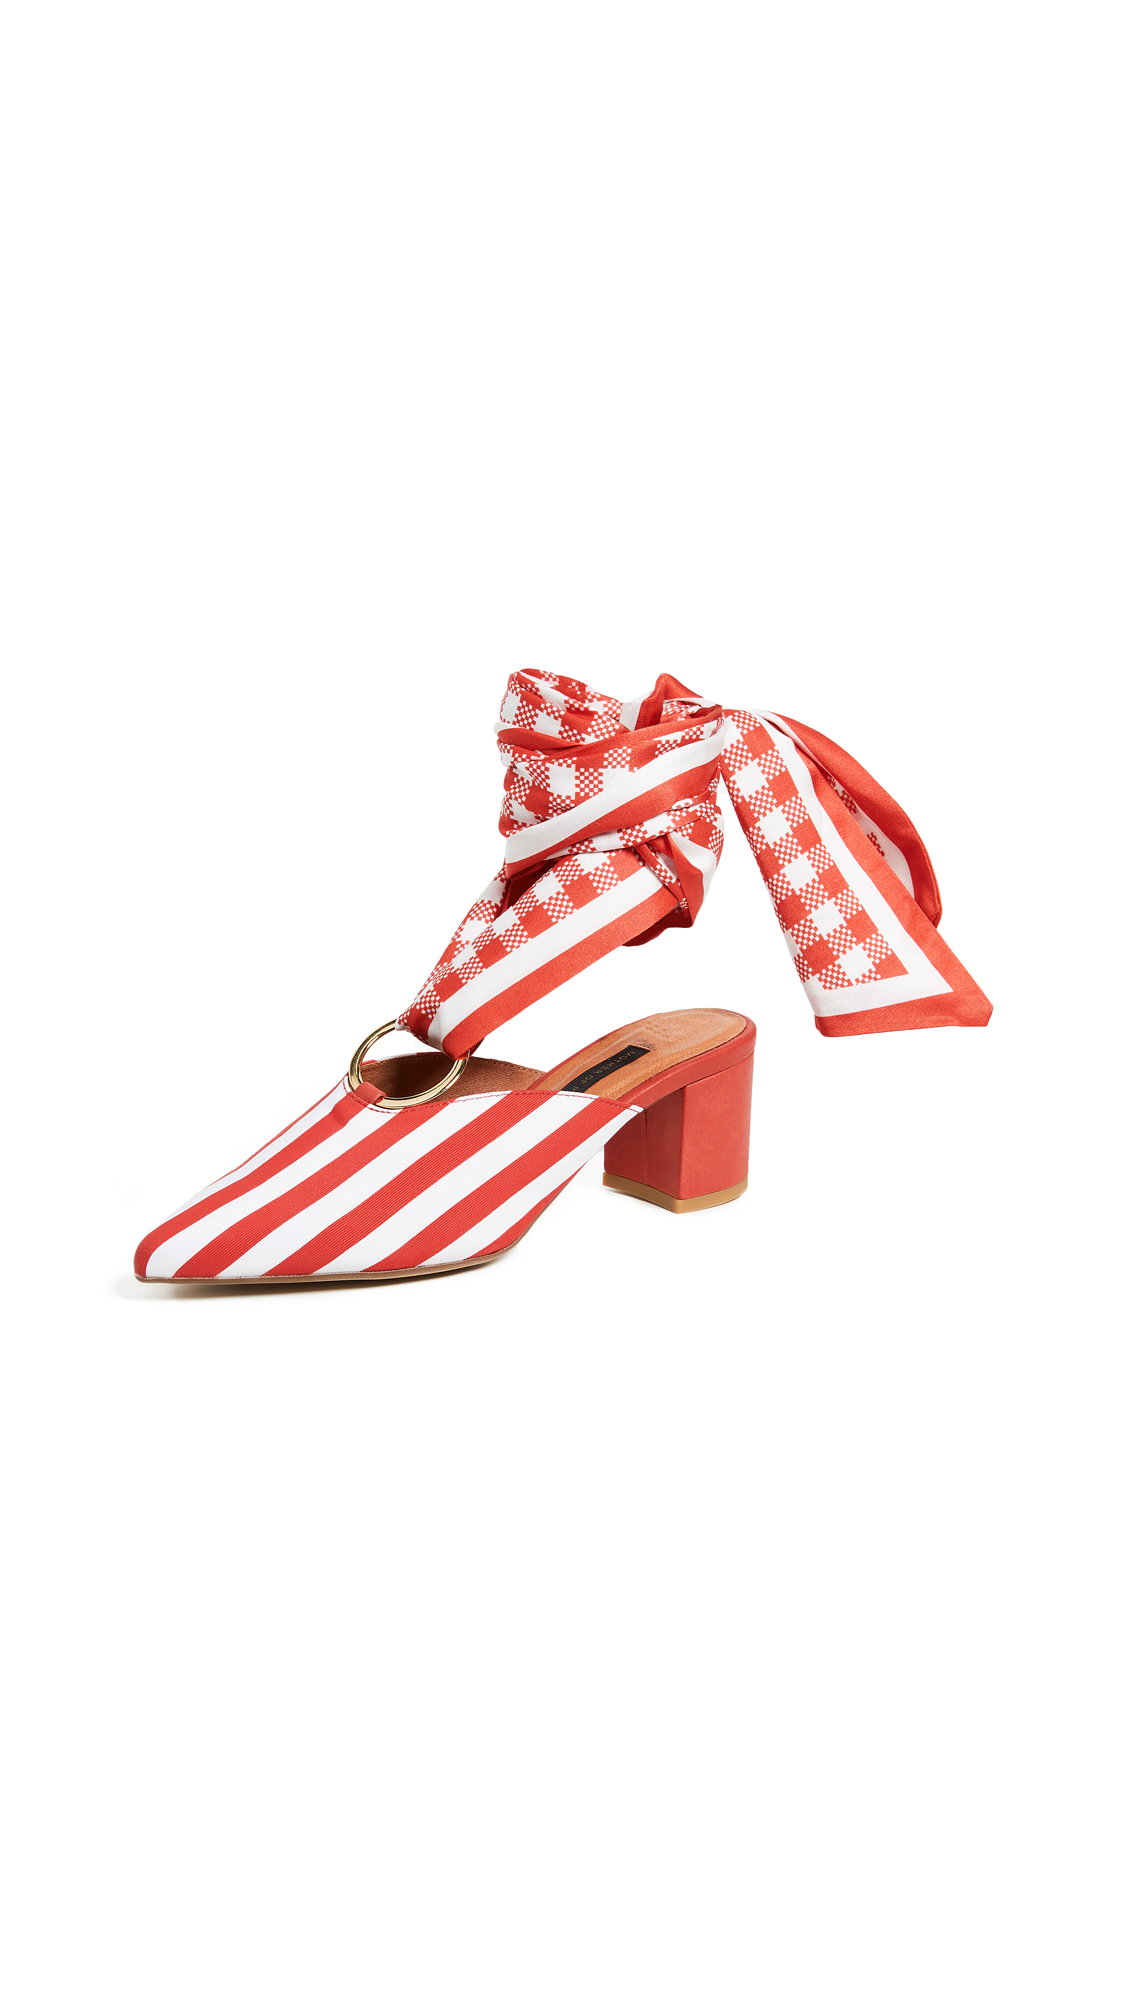 Mother of Pearl Amber Mules - Red/White